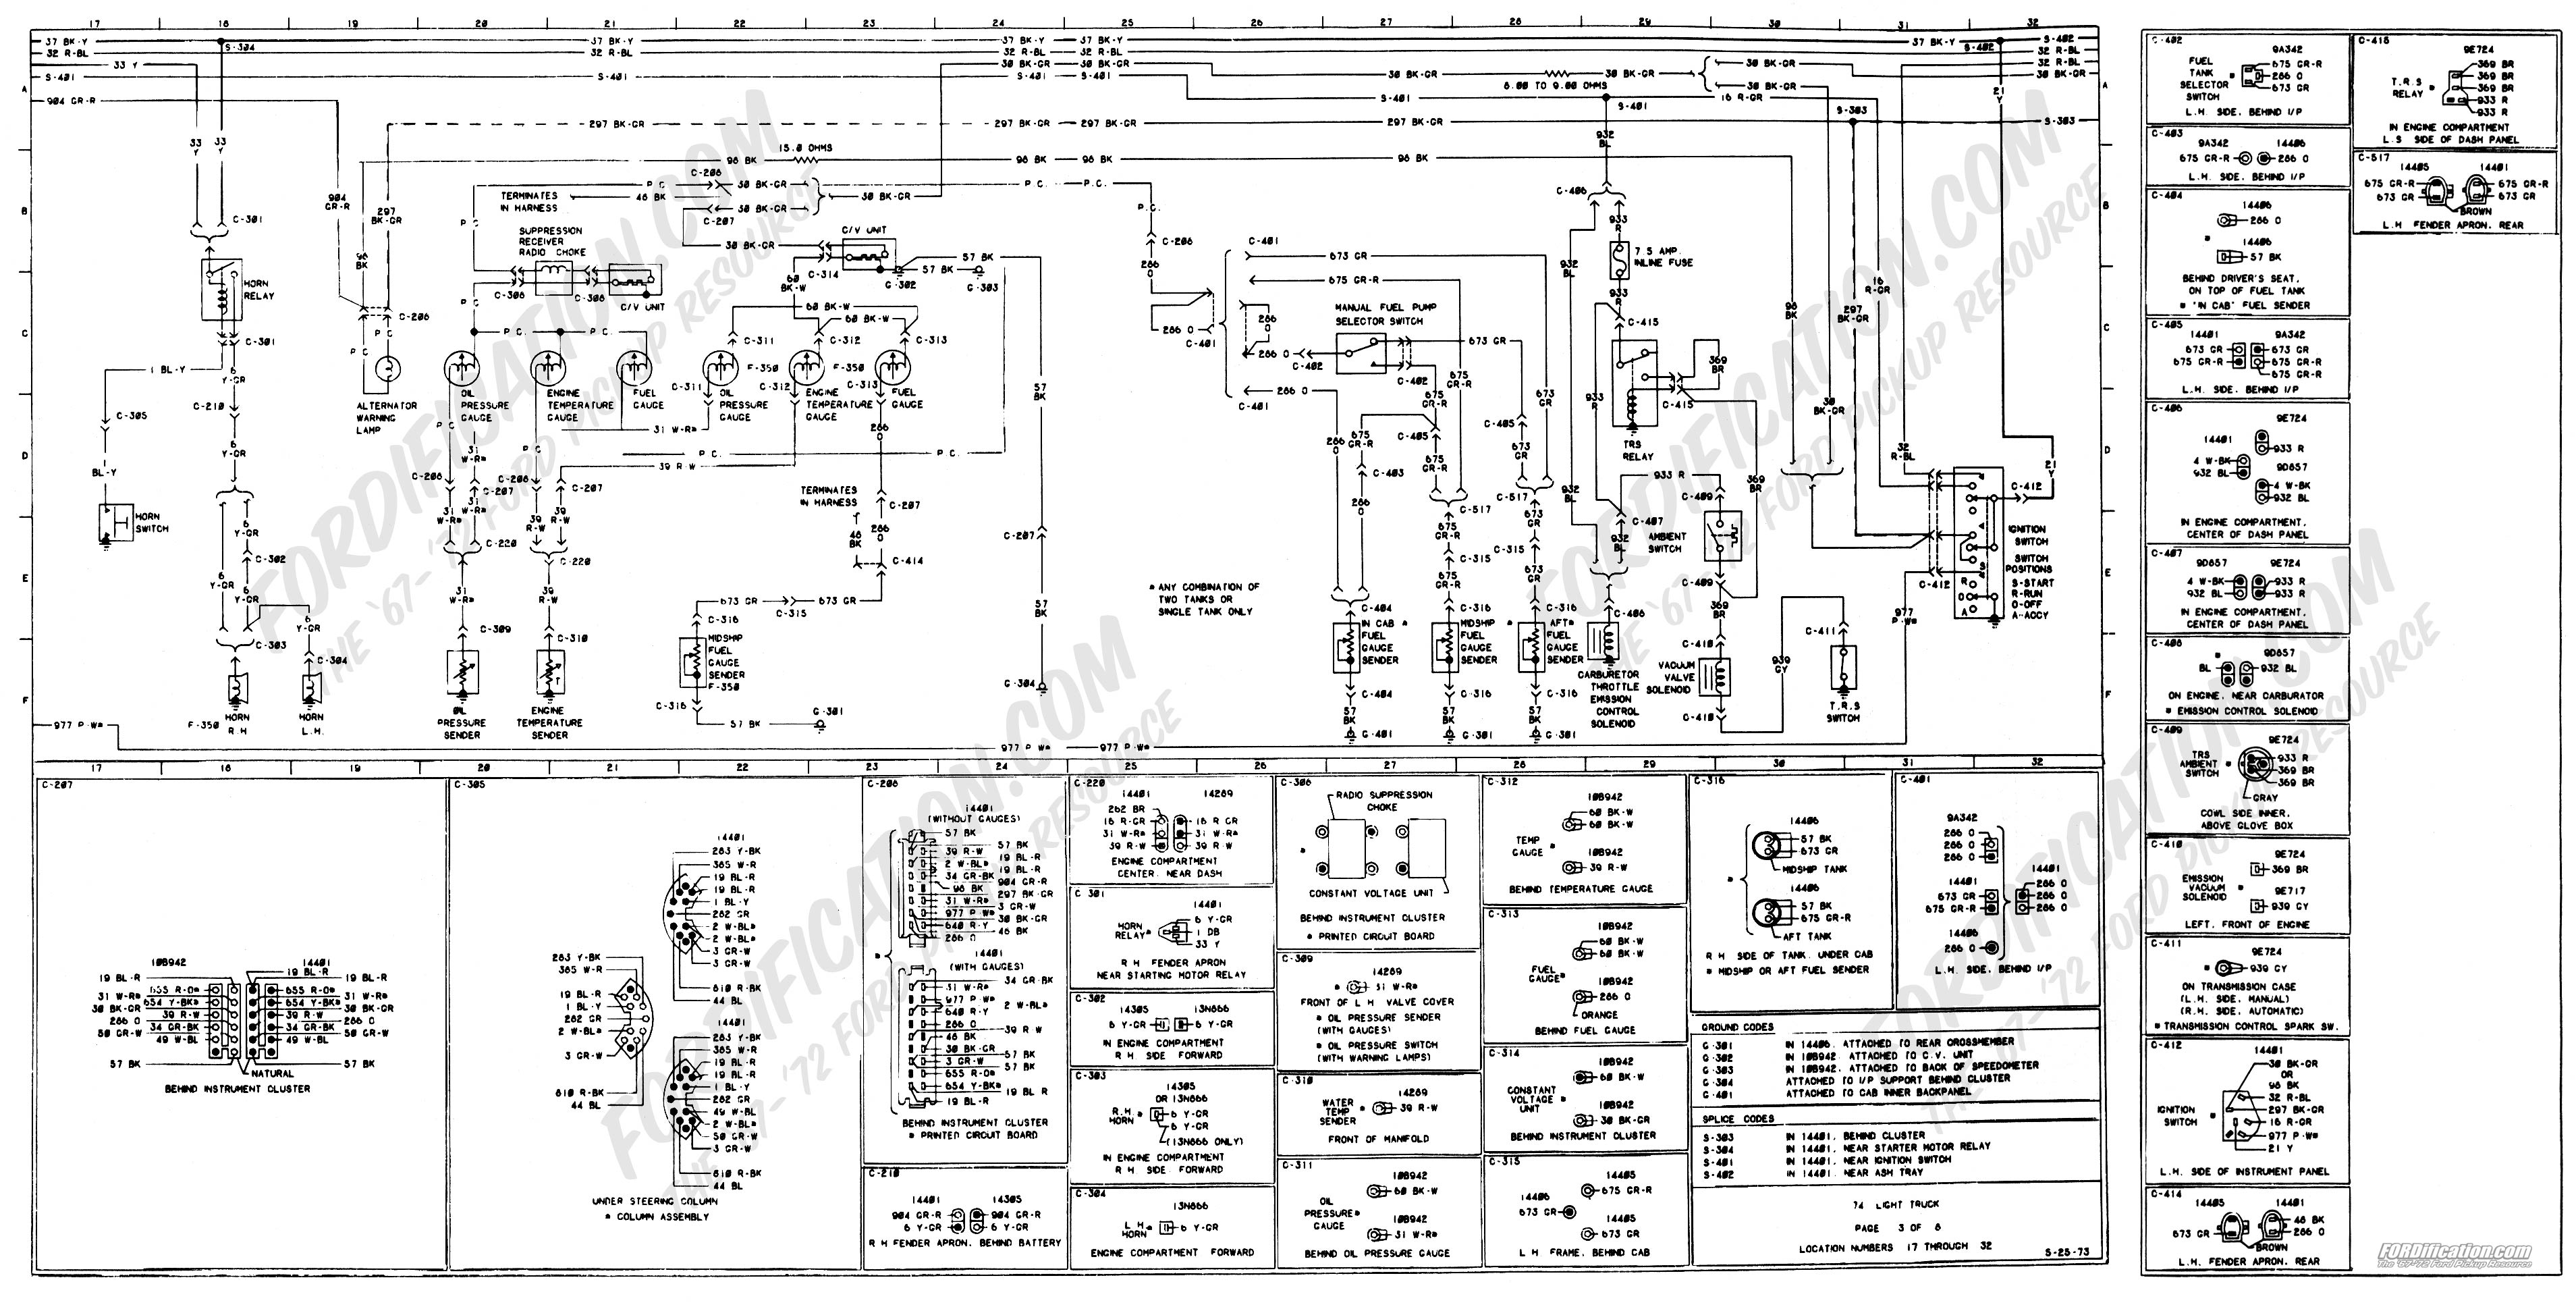 F Fuel Pump Wiring Diagram Electric on fuel gauge wiring diagram, automatic choke wiring diagram, fuel pump circuit diagram, electric antenna wiring diagram, ford f-350 super duty wiring diagram, fuel pump relay diagram, fan relay wiring diagram, electric fuel pumps for carbureted engines, international 8100 fuel diagram, gm fuel pump connector diagram, backup lights wiring diagram, fuel system wiring diagram, holley fuel pump diagram, electric fan wiring diagram, throttle body wiring diagram, fuel injector wiring diagram, electric clock wiring diagram, 1998 buick lesabre fuel pump diagram, 91 ford ranger fuel pump diagram, thermostat wiring diagram,